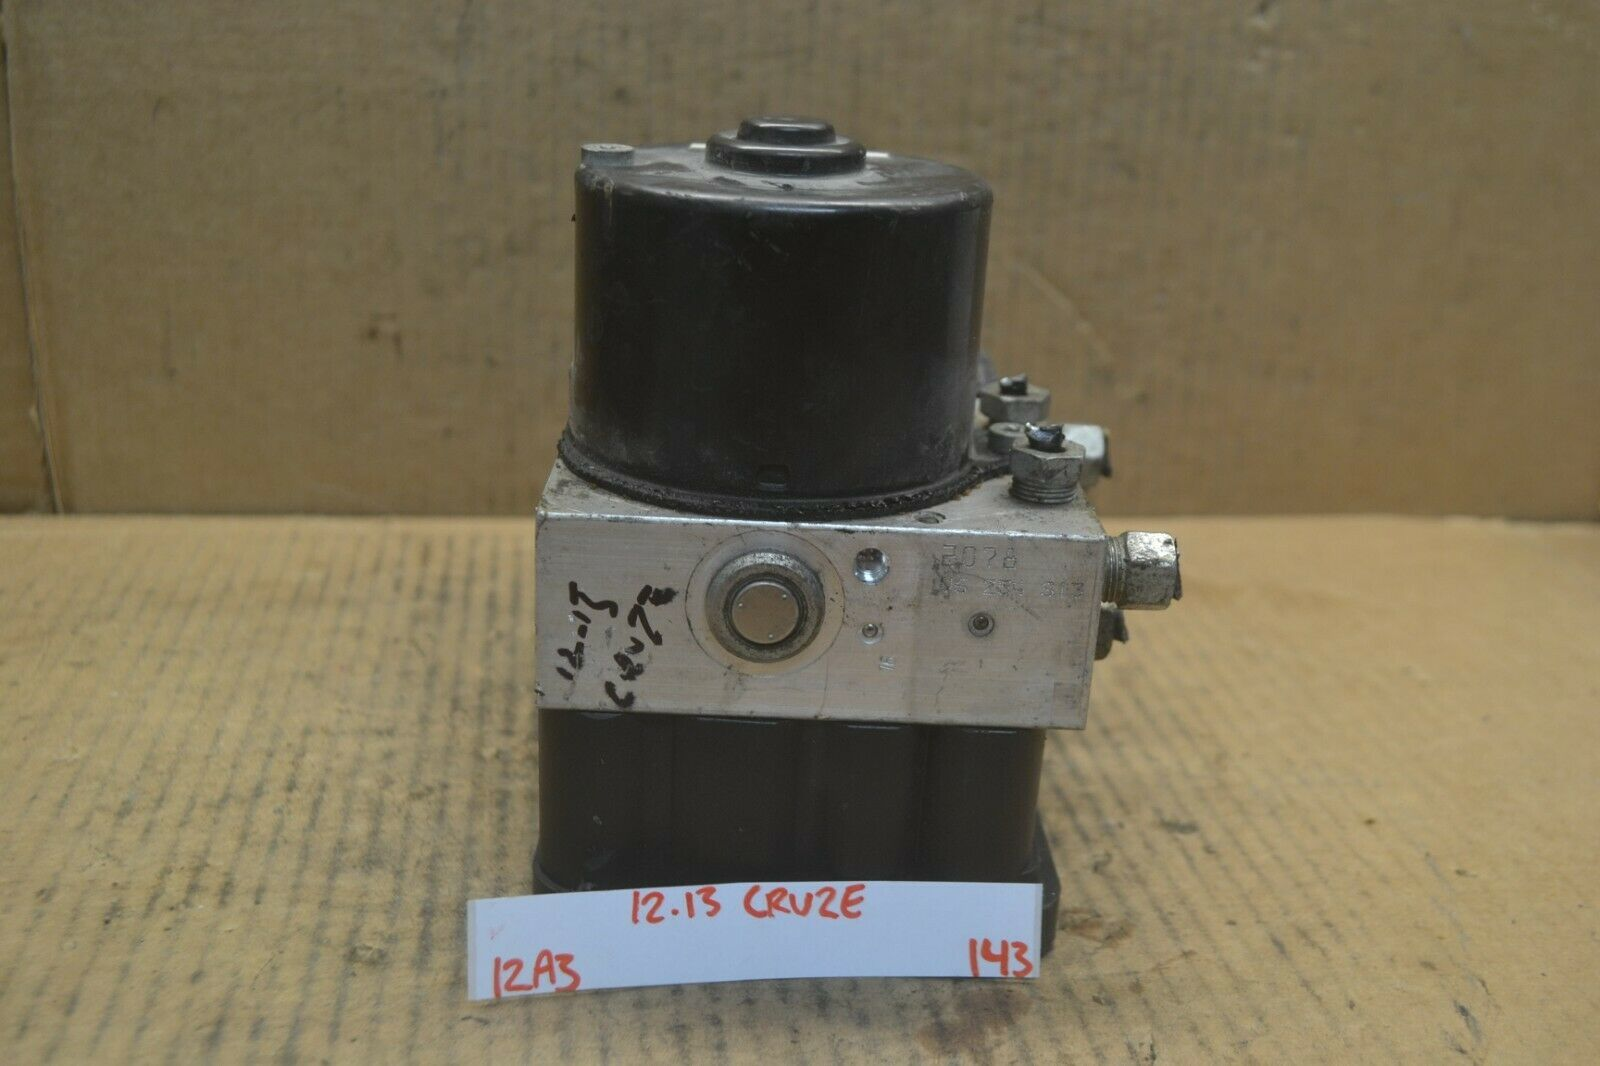 Primary image for 12-15 Chevrolet Cruze ABS Pump Control OEM 13434670 Module 143-12a3